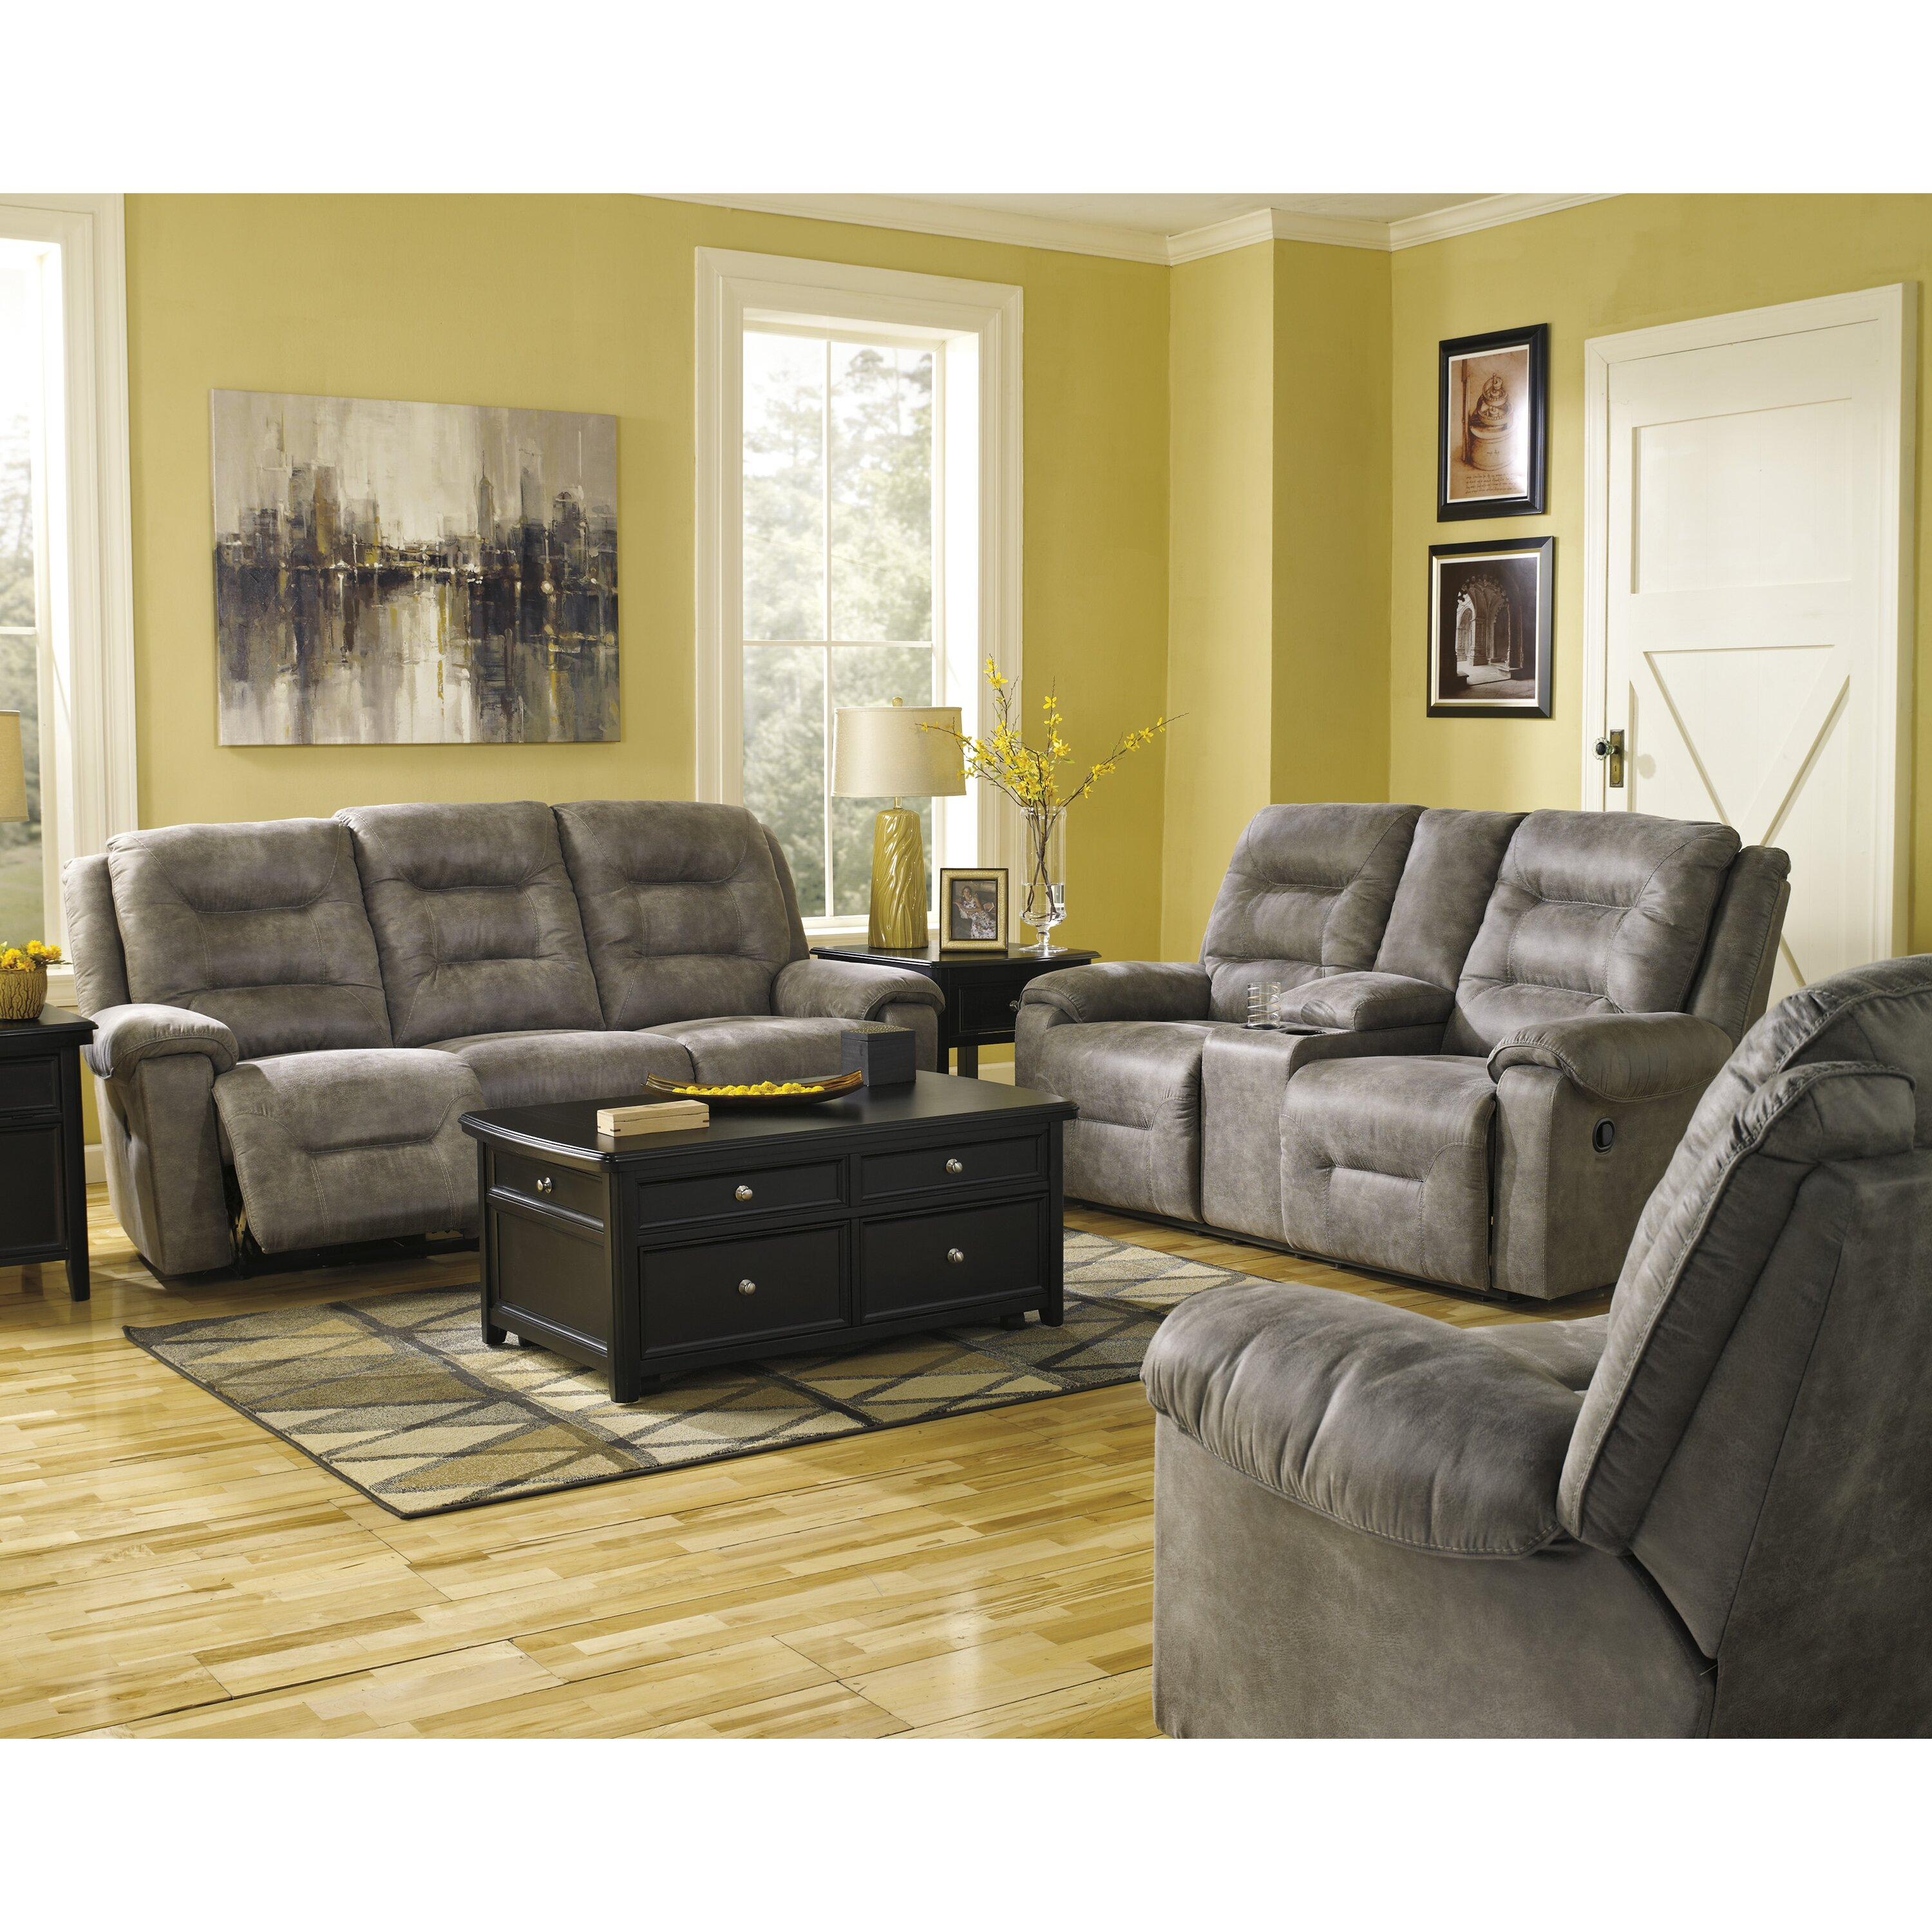 Wayfair Living Room Sets